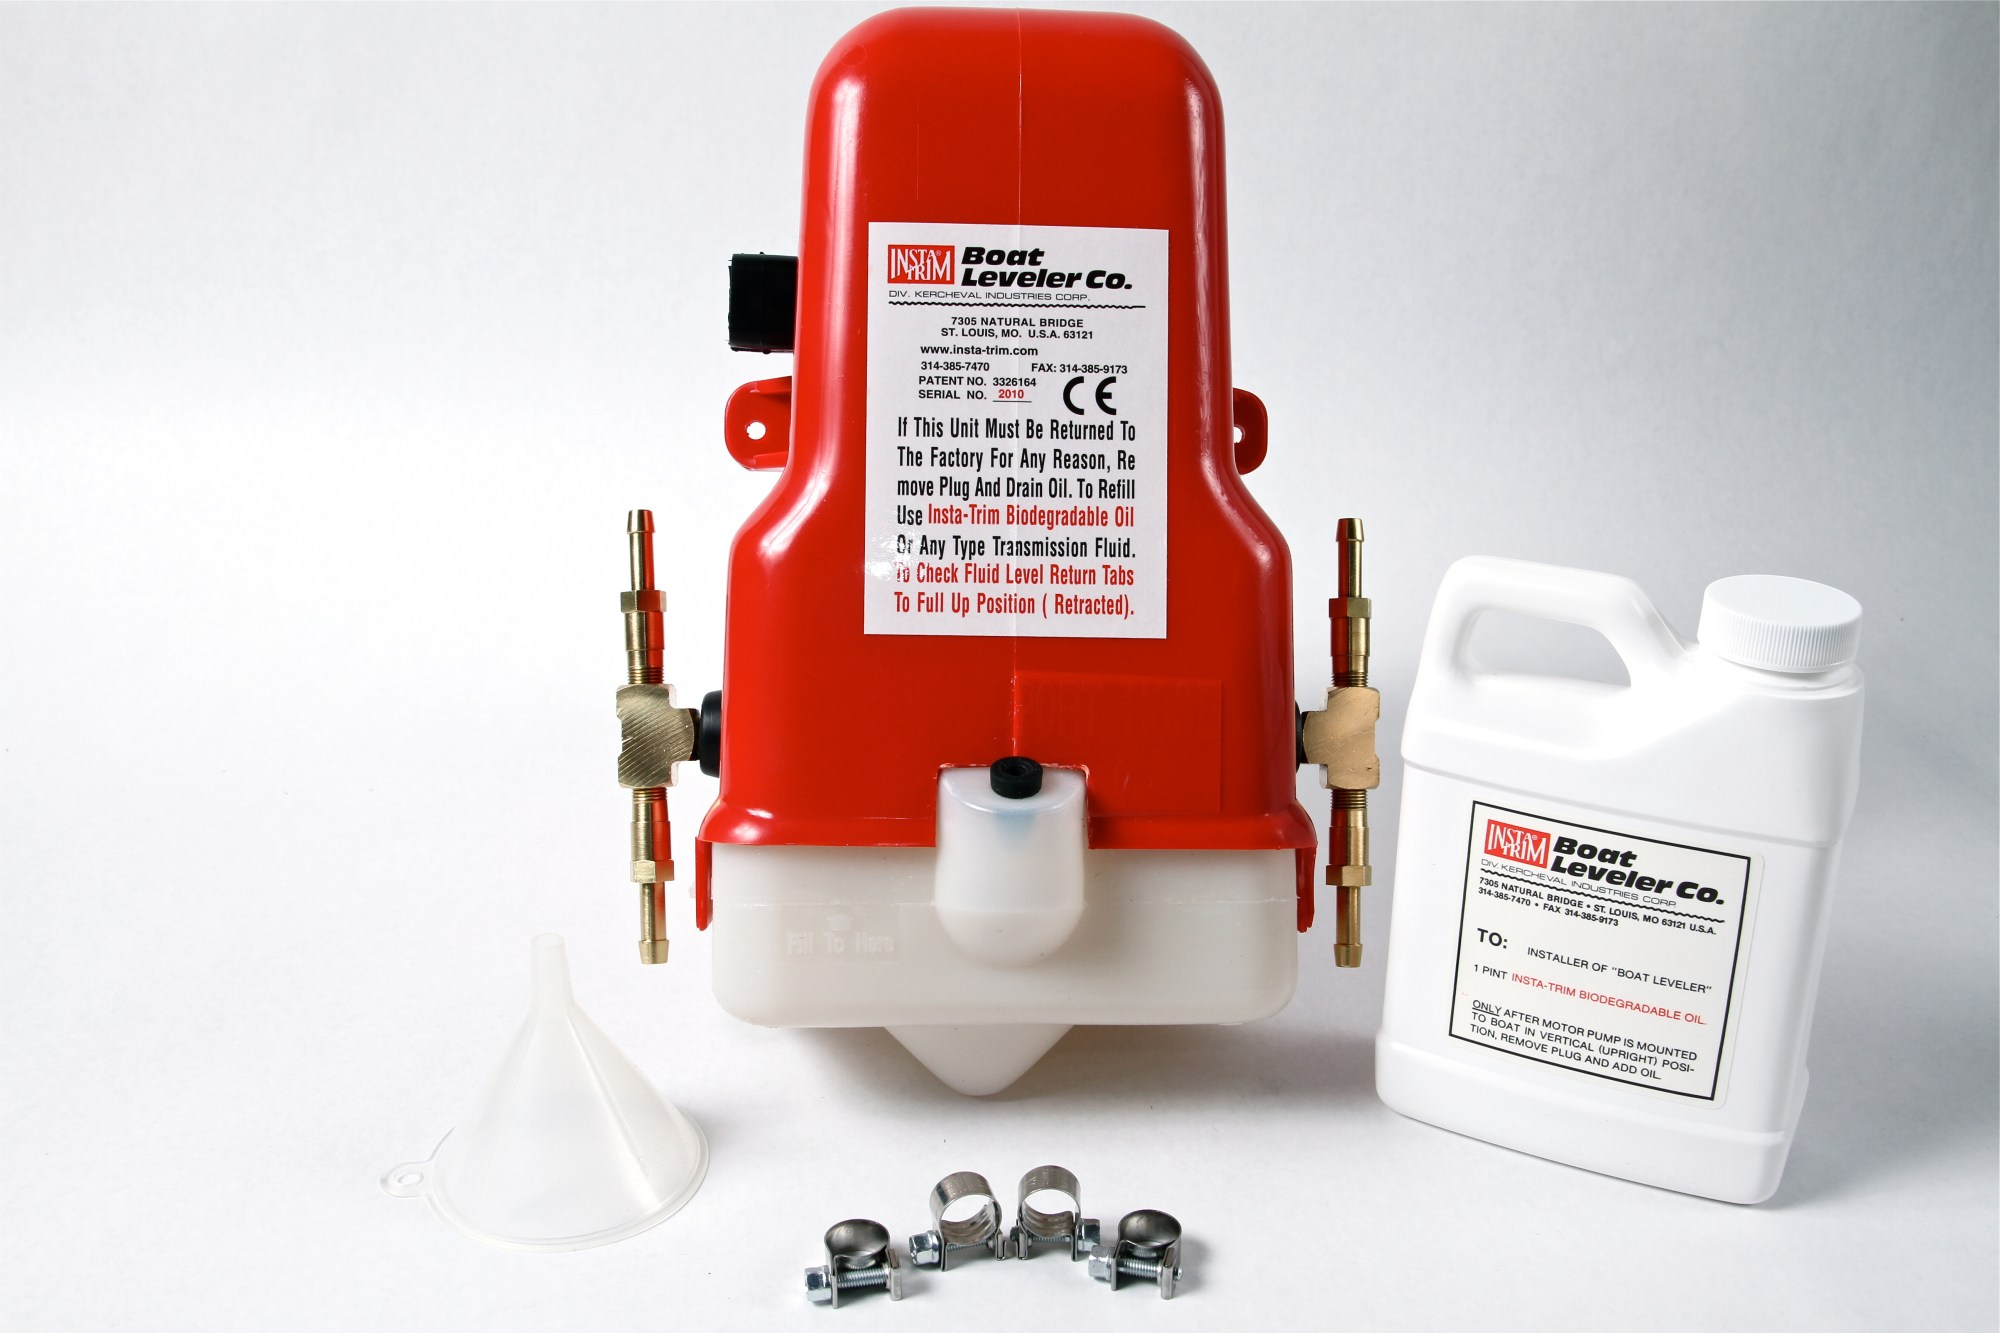 hight resolution of 12 volt motor pump with tees for 4 cylinders hoses